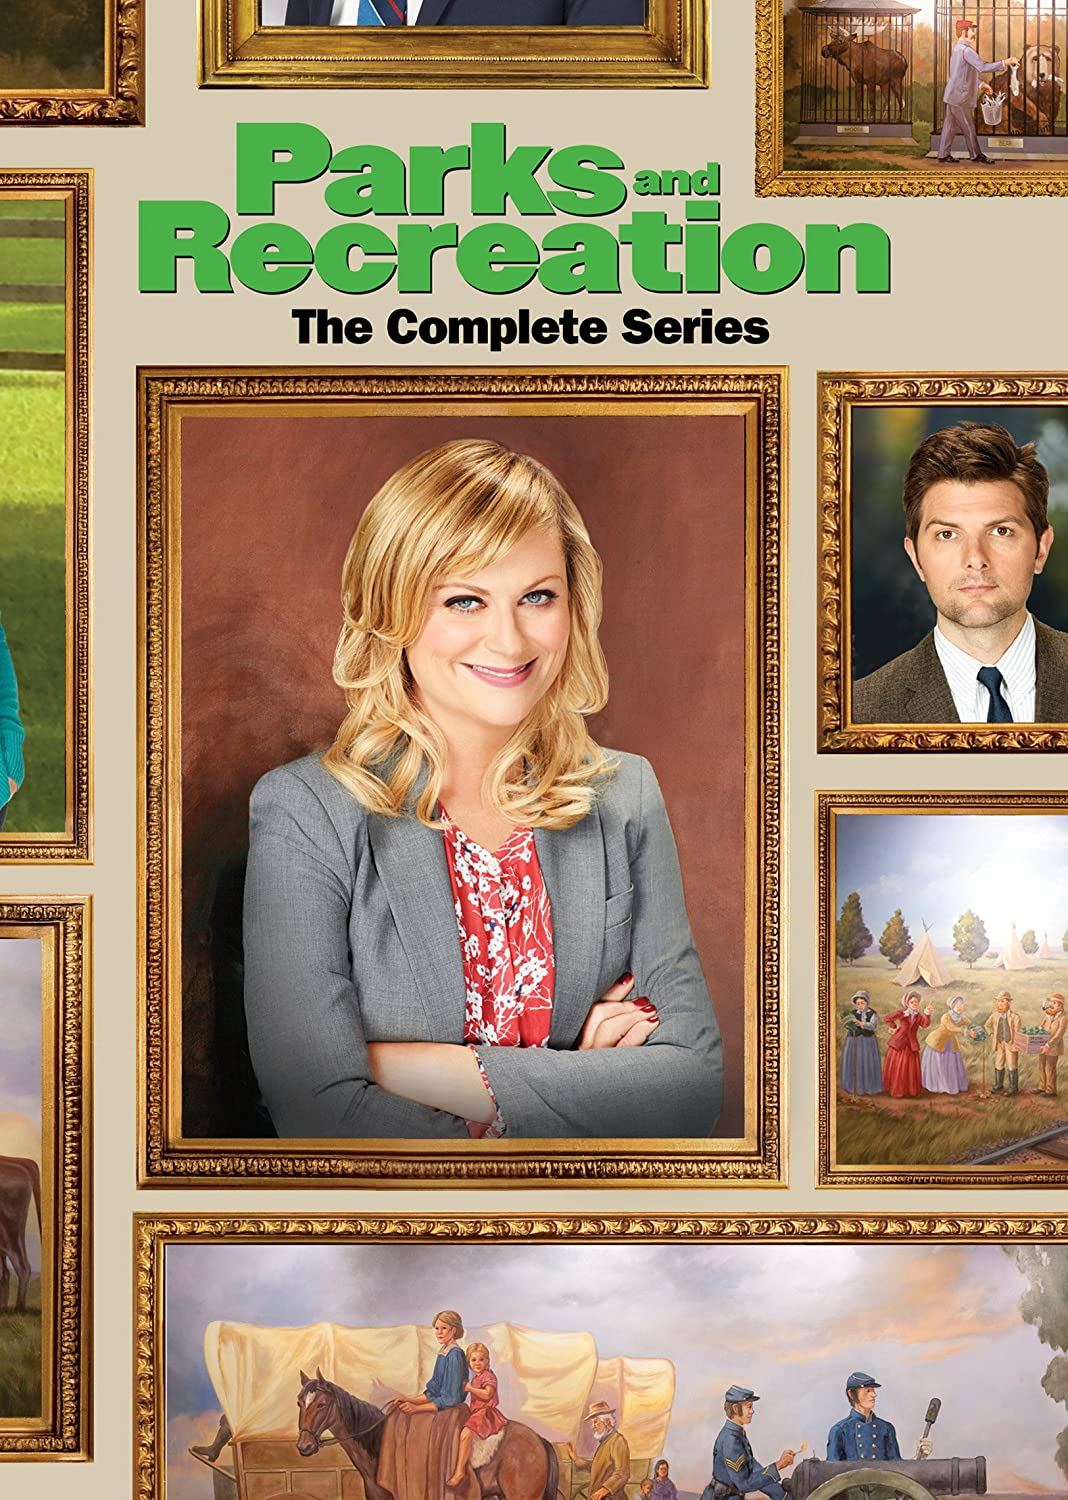 Parks And Recreation The Complete Series Amy Poehler Adam Scott Nick Offerman Aziz Ansari Aubrey Plaza Chris Pratt Retta Jim O Heir Movies Tv